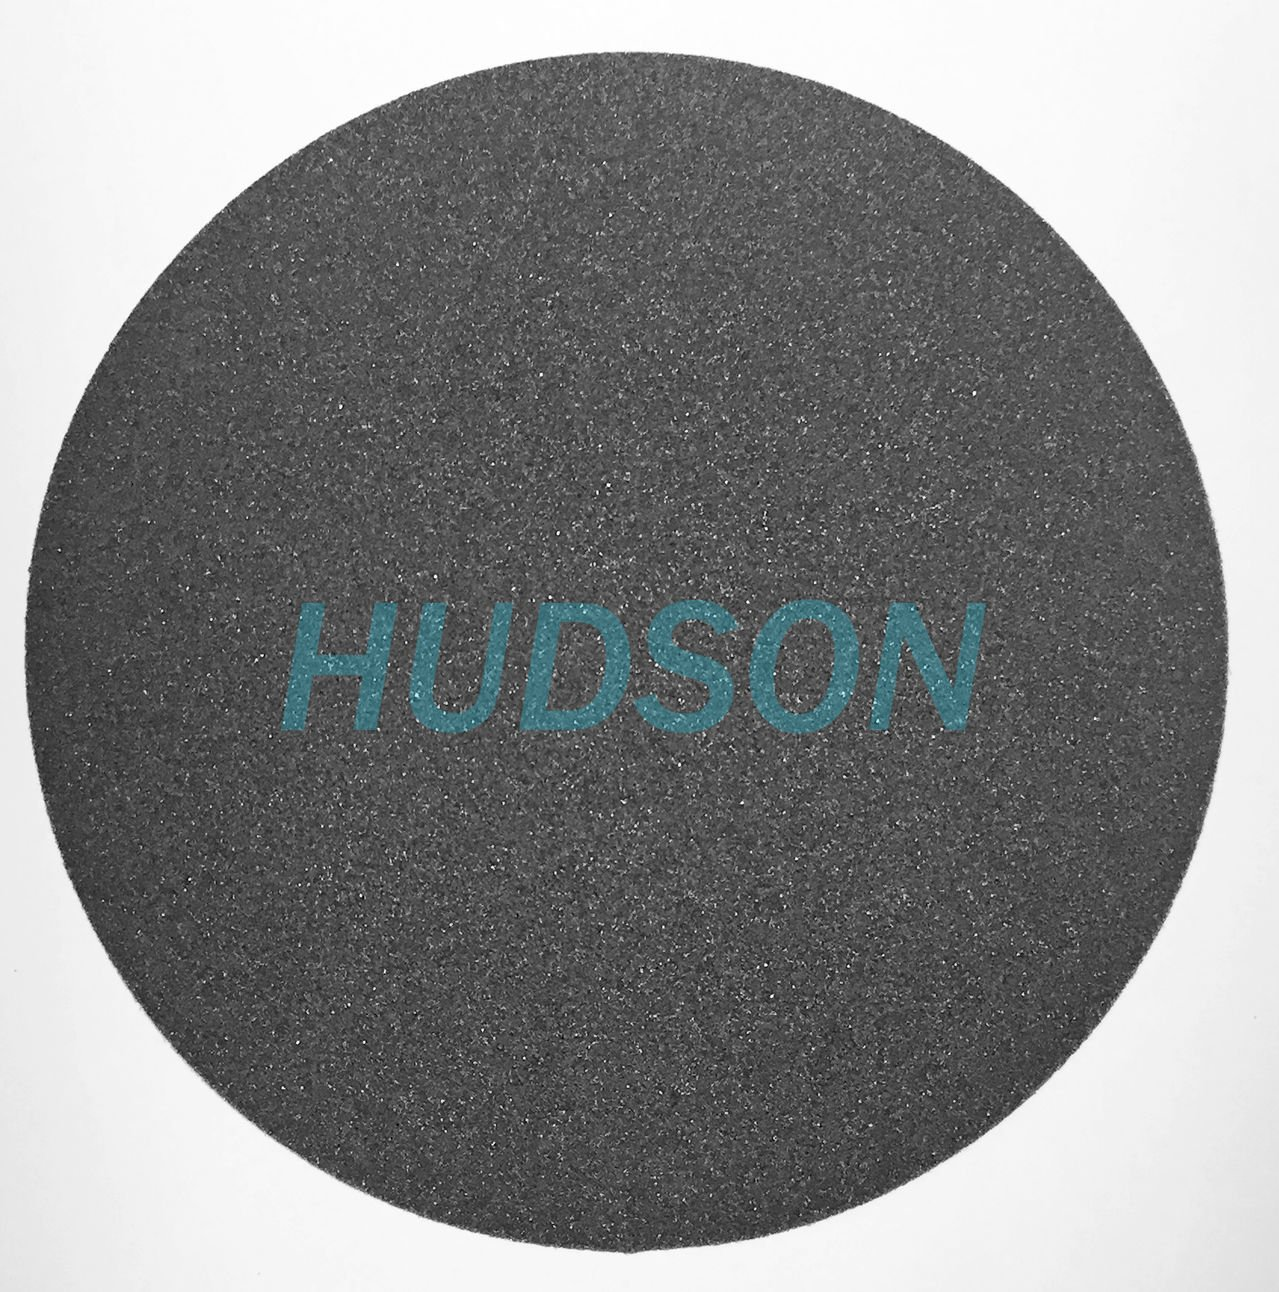 Metallurgical Paper PSA Back 1200 Grit Abrasive Discs 100 Pack C-Weight Paper HUDSON 8 inch SiC Wet//Dry